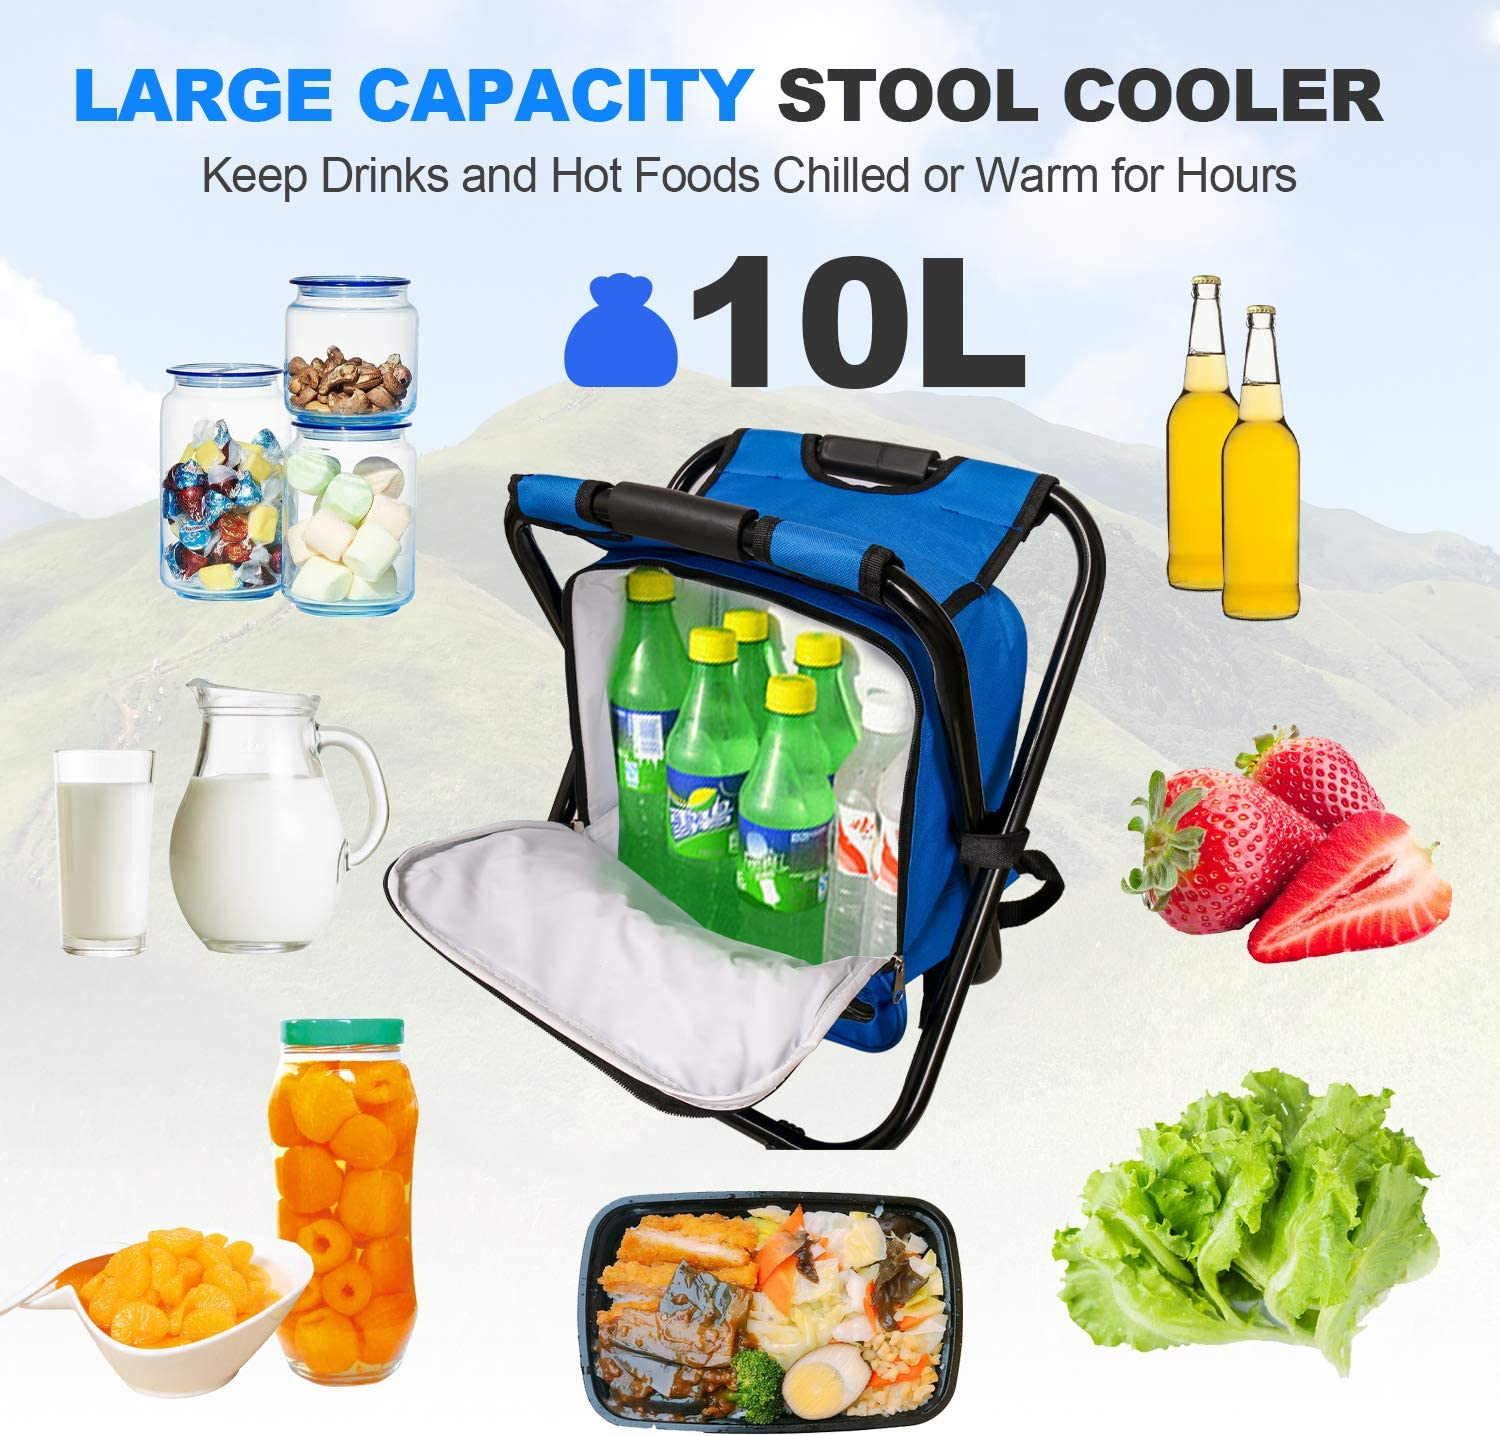 Lightweight Folding Stool Fishing Portable Backpack Cooler Chair Picnic,400 LBS Capacity Hiking Foldable Backpack Stool Outdoor Gear for Camping Beach Travel Blue